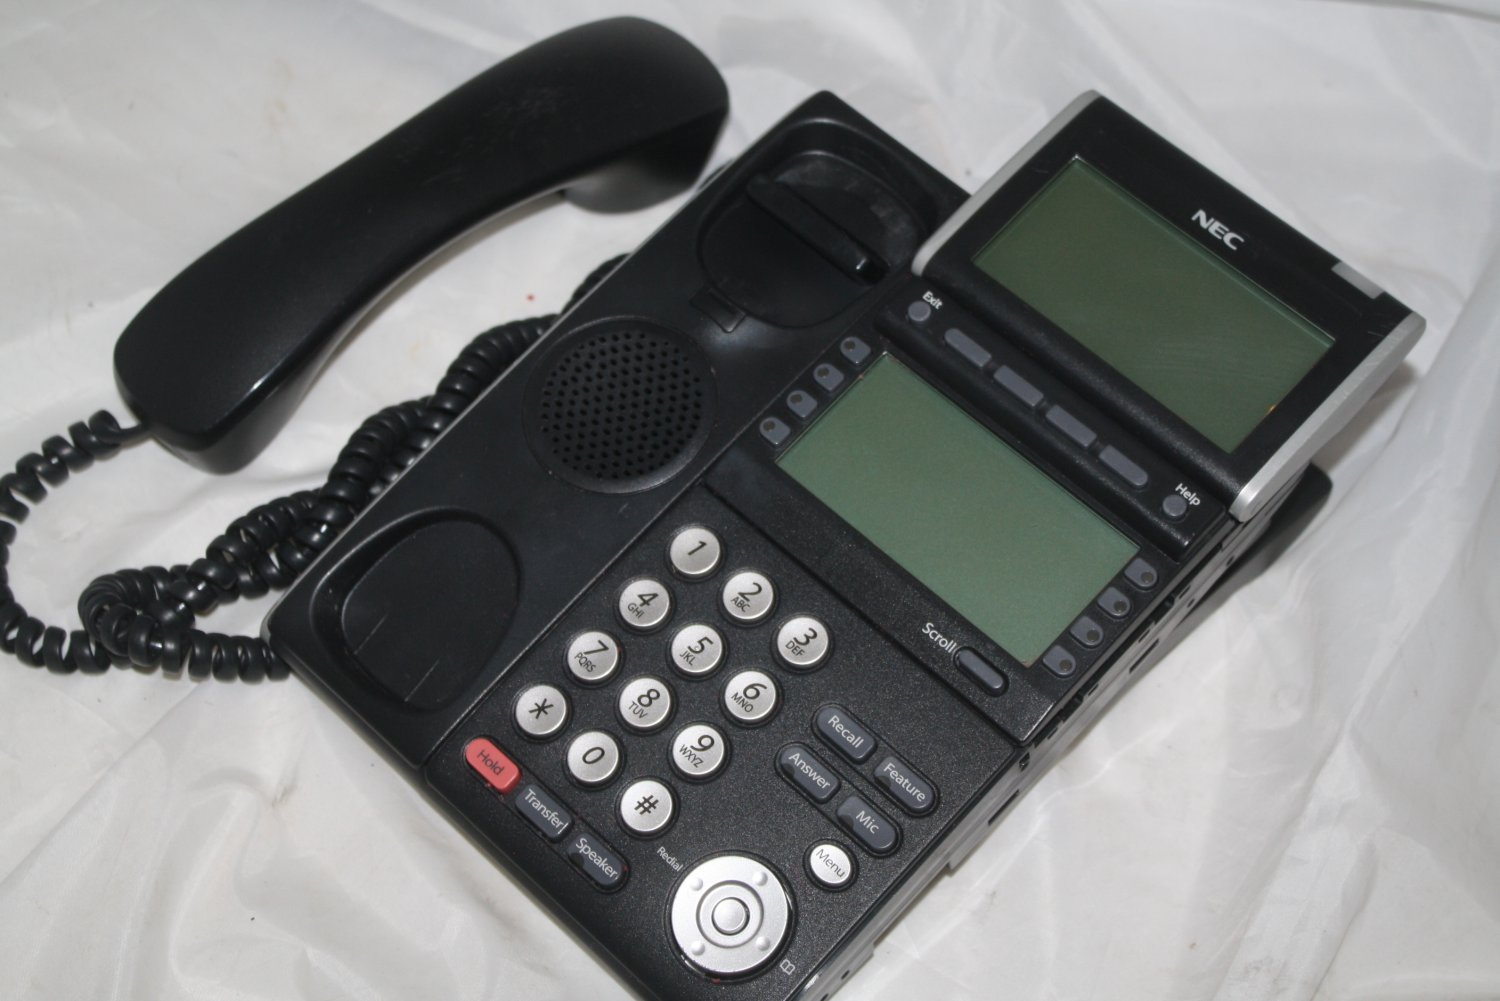 NEC DT300 Series DTL-8LD-1(BK) Office Phone (phone only) 5-16